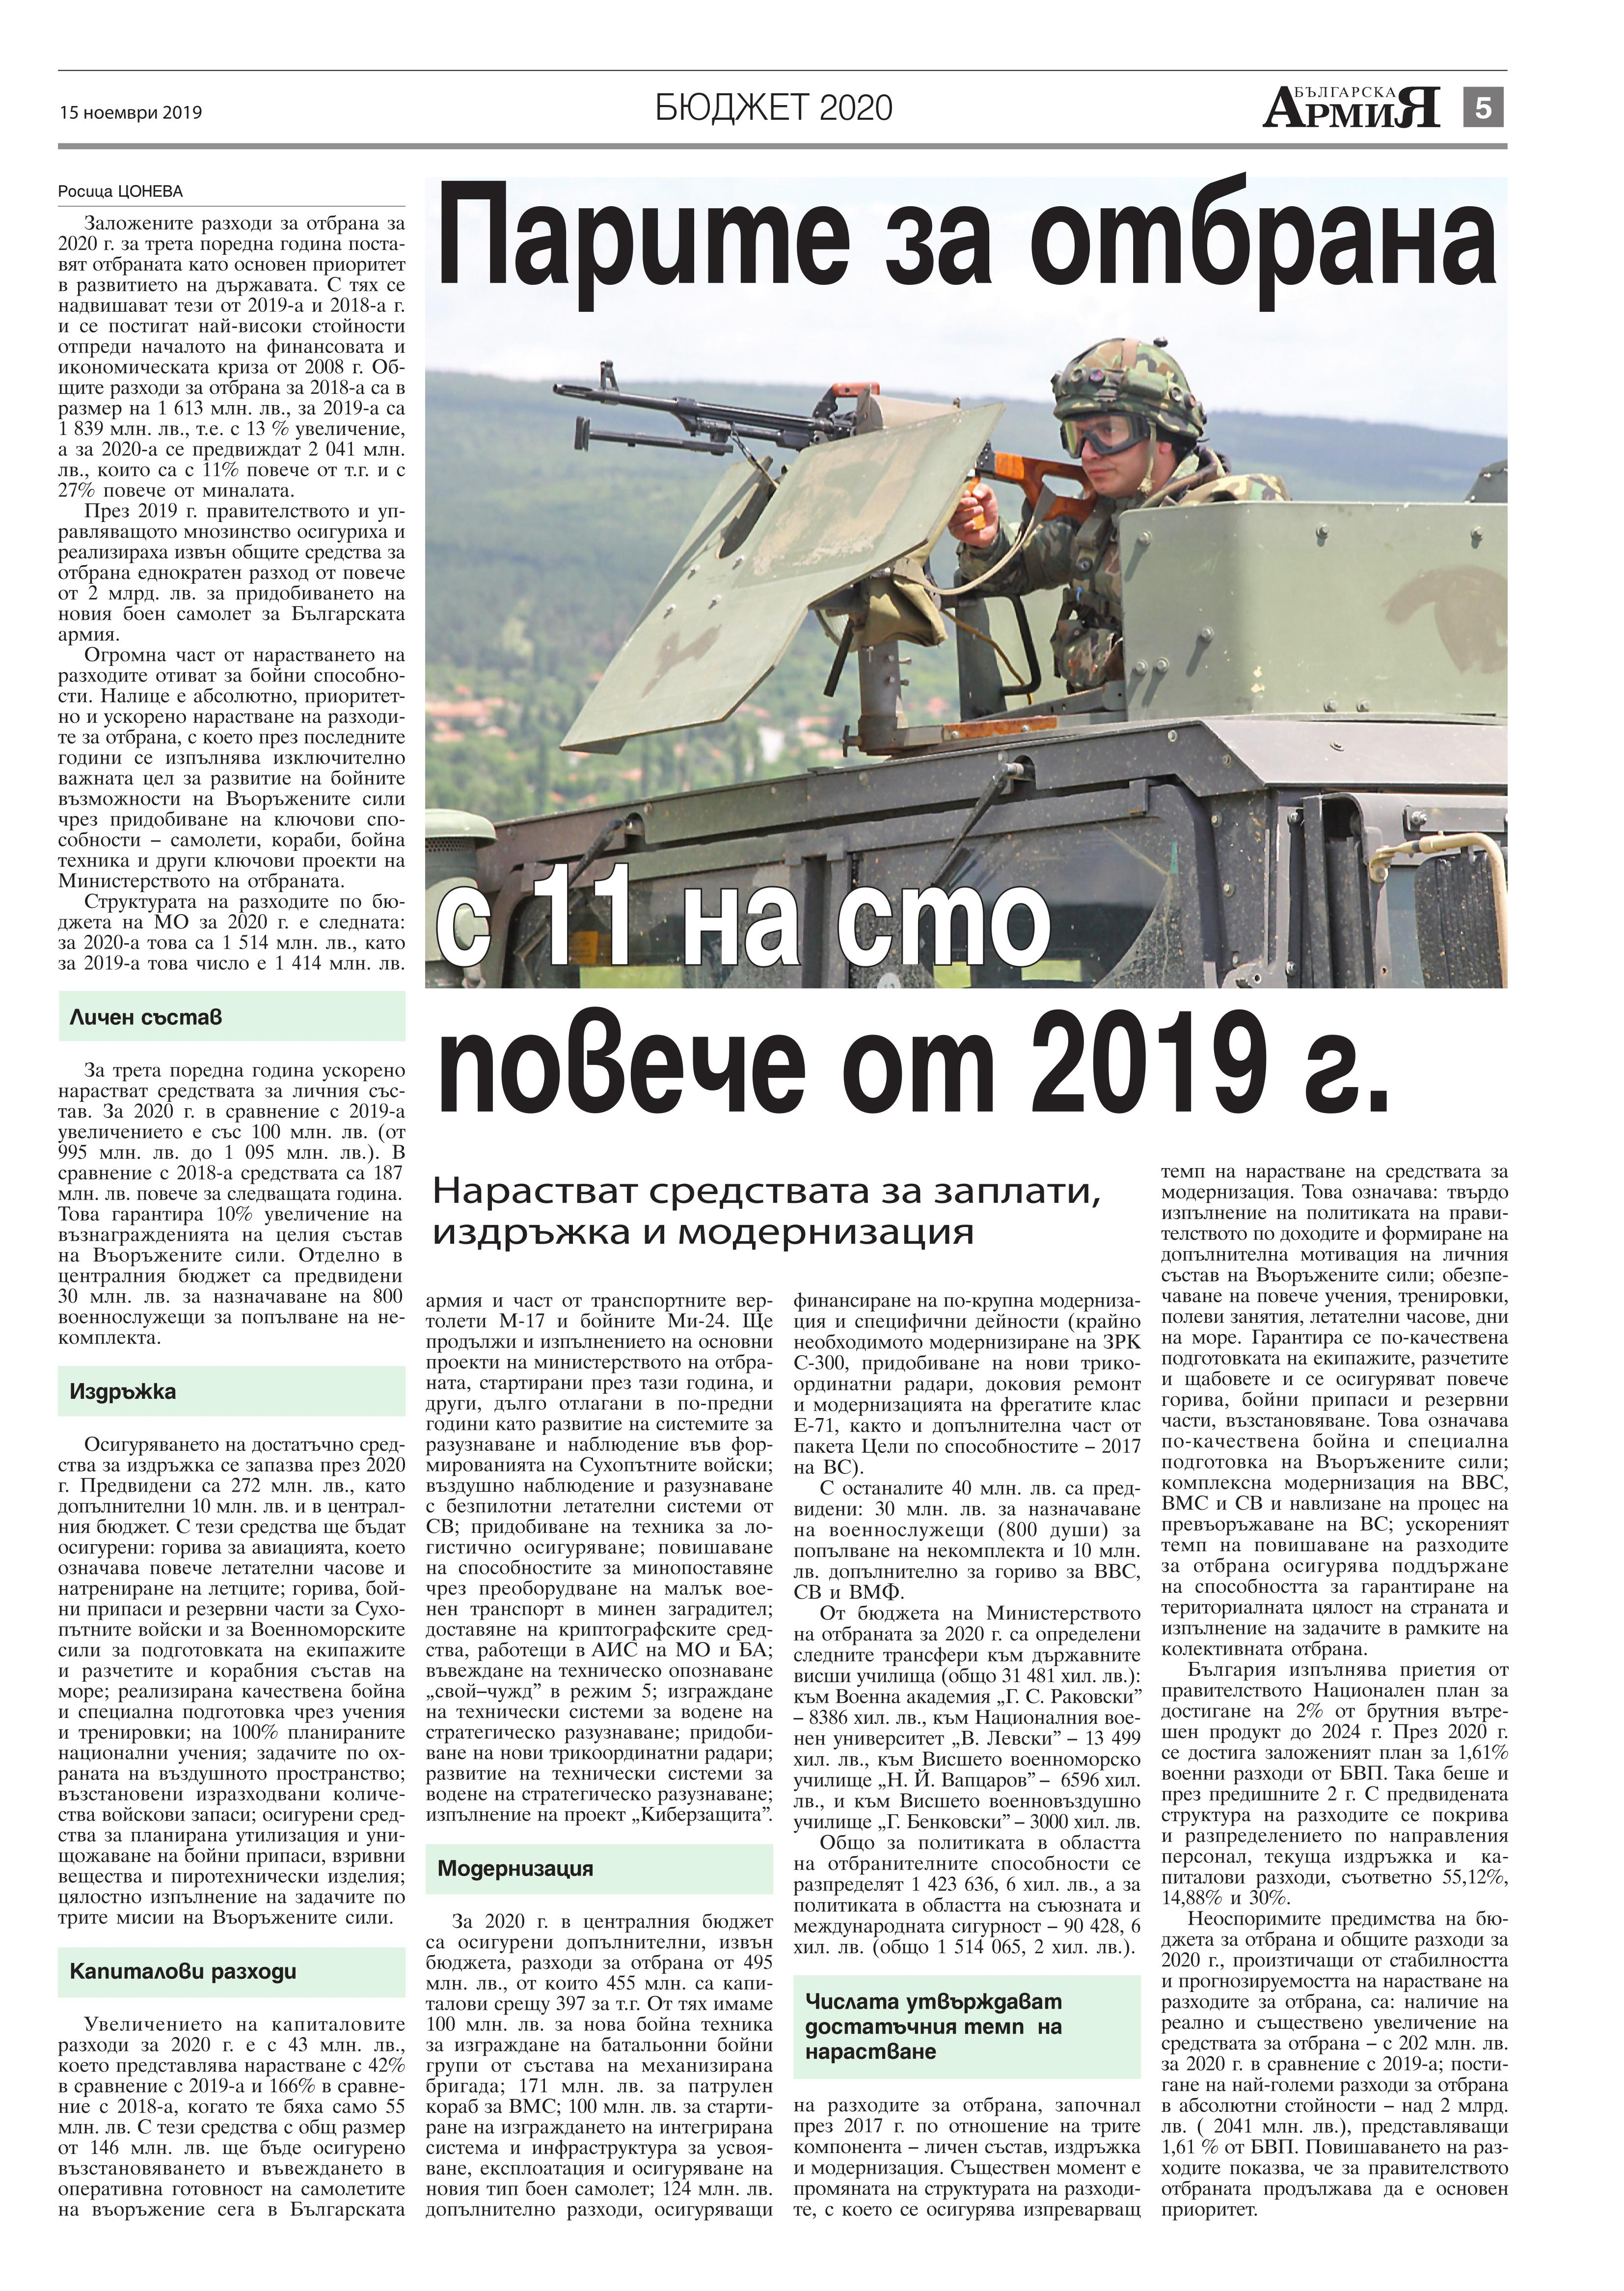 https://armymedia.bg/wp-content/uploads/2015/06/05.page1_-112.jpg